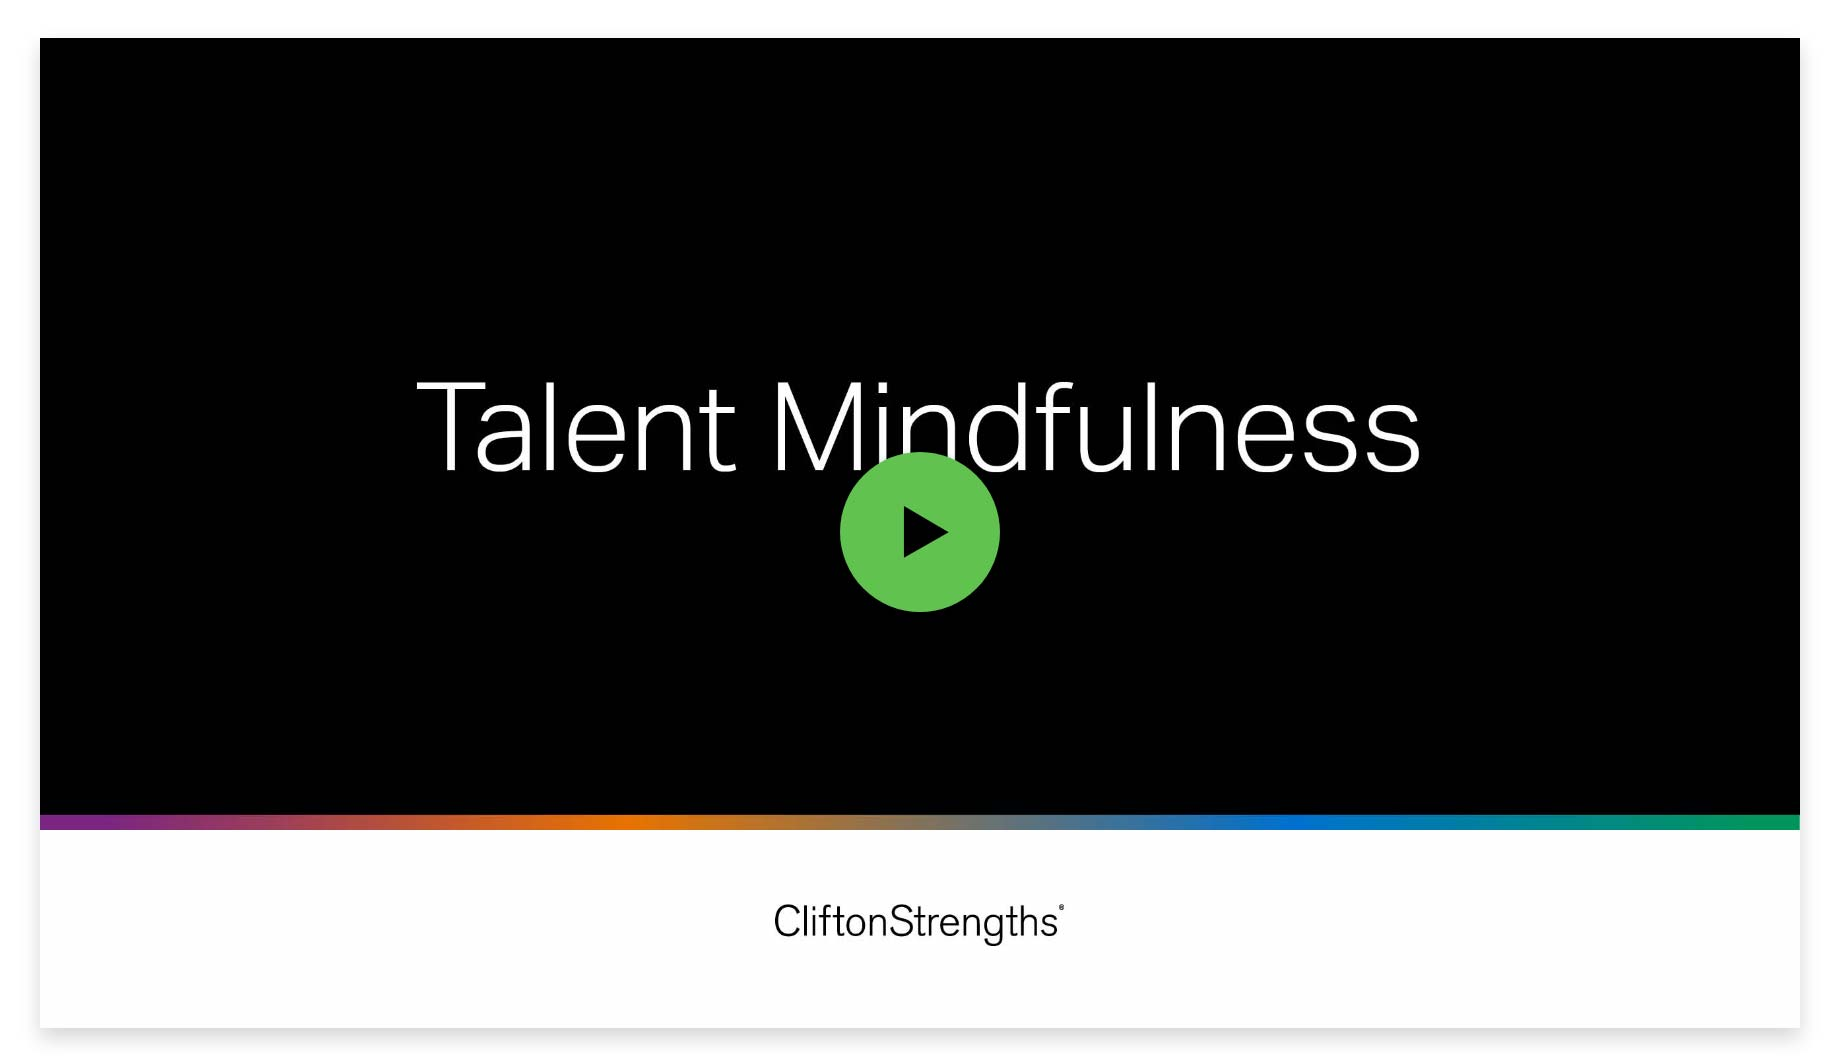 Play video: Gallup Talent Mindfulness: The Trailer